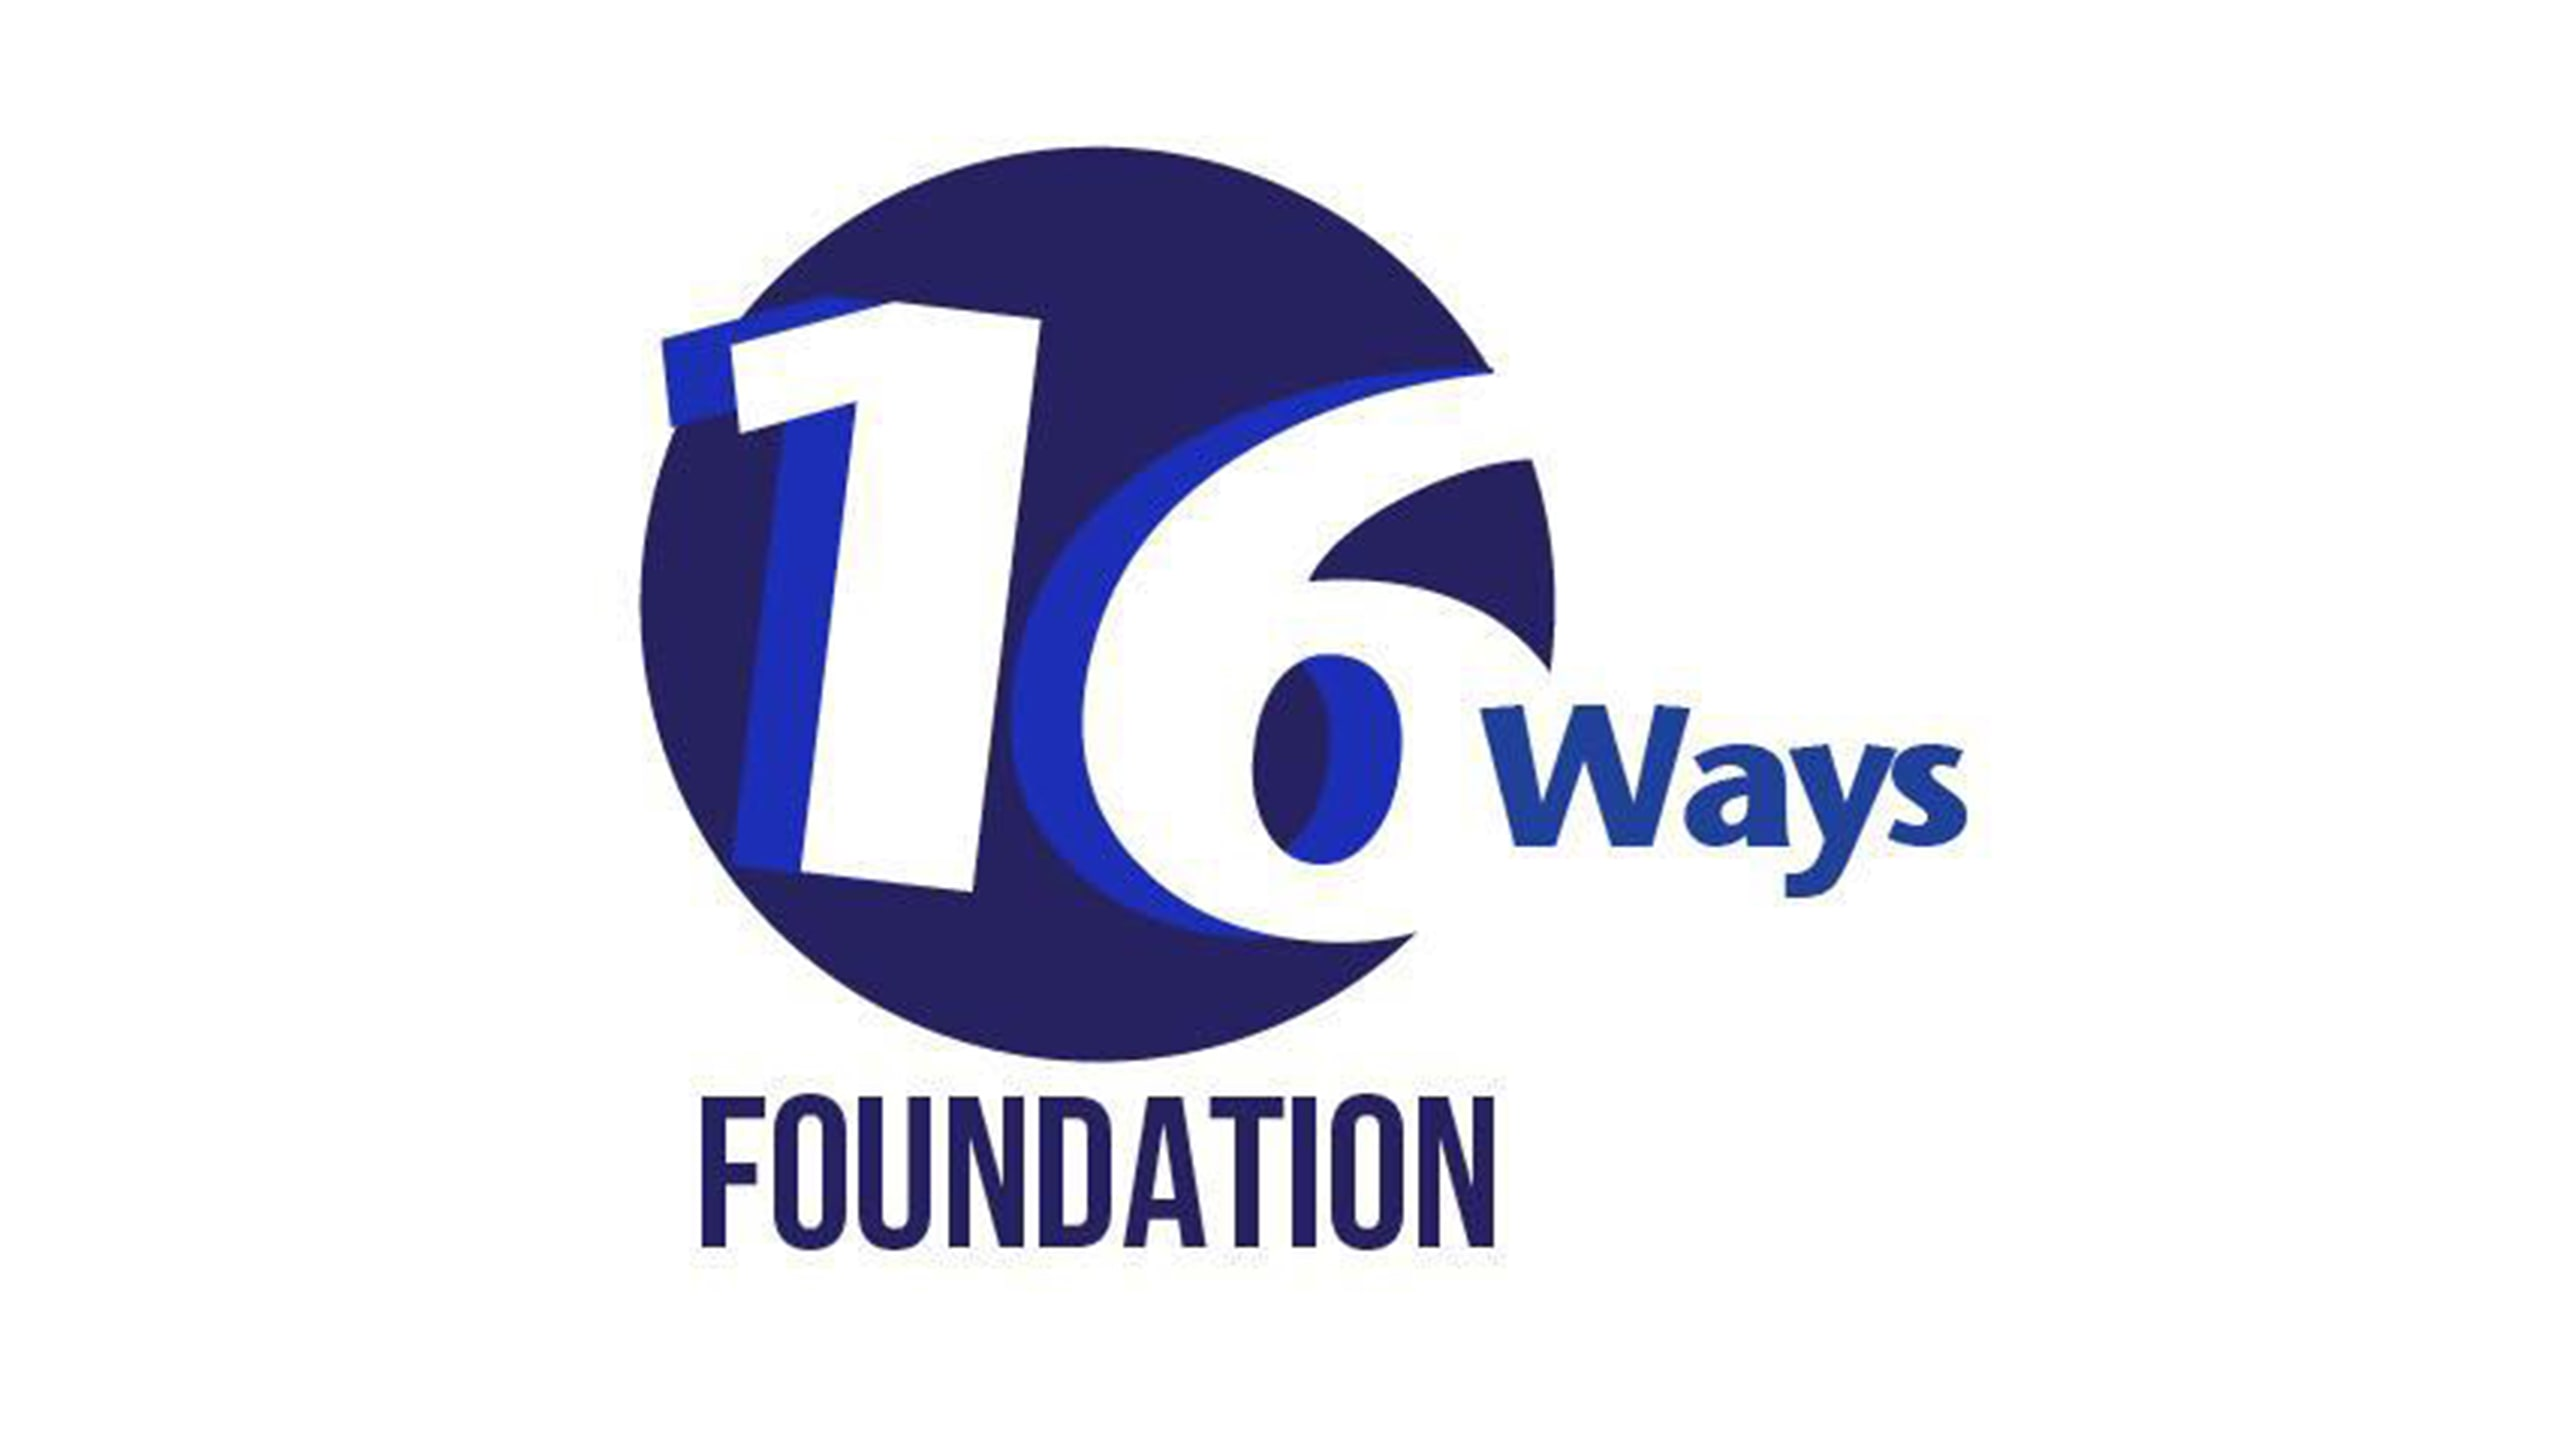 Wesley Woodyard - 16WAYS Foundation